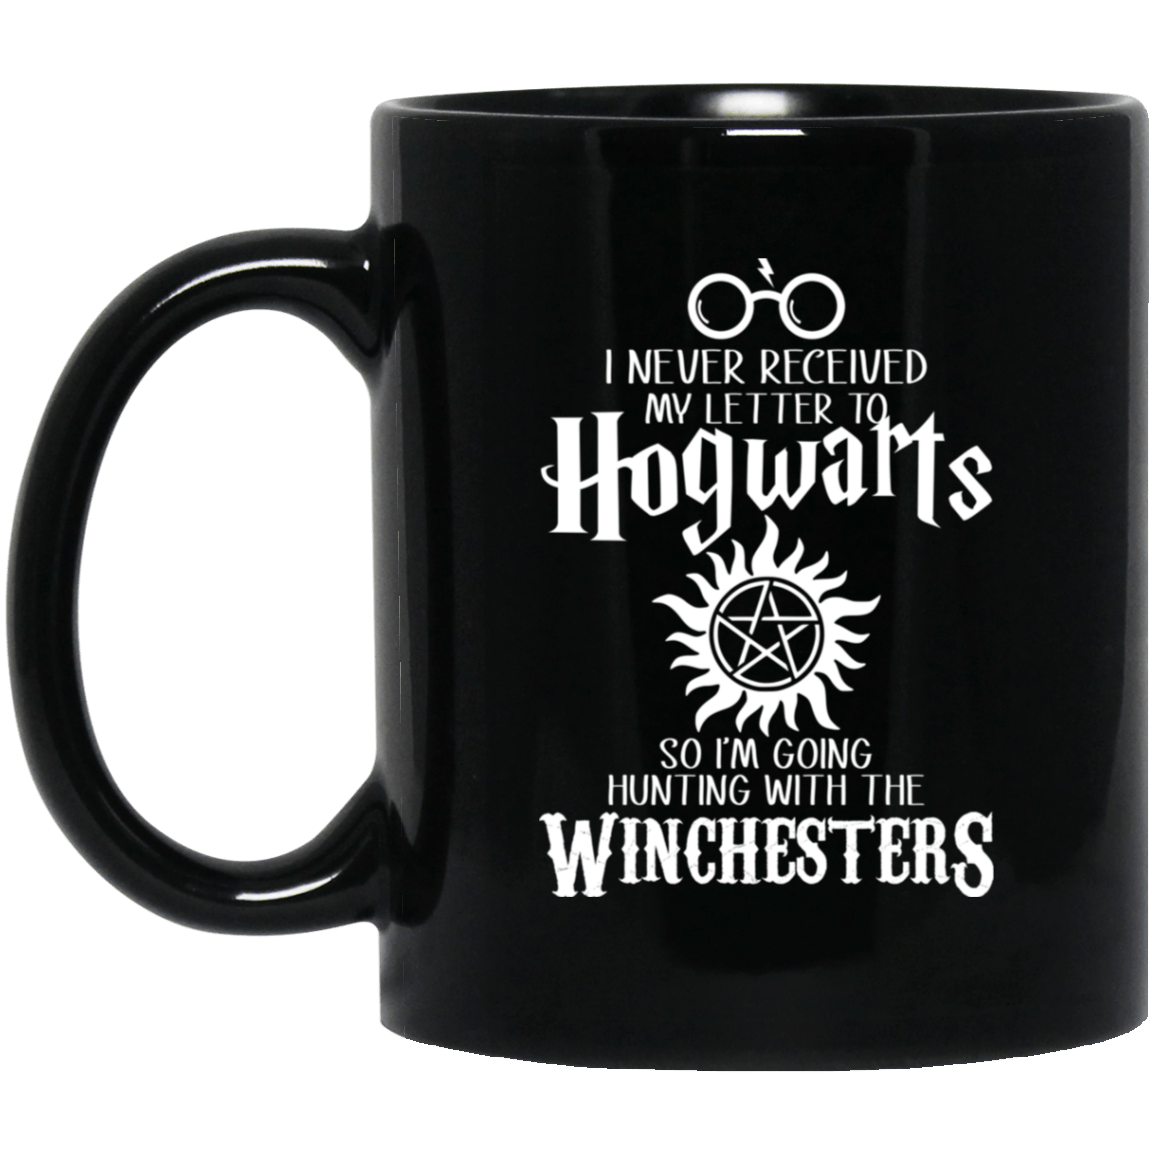 I Never Received My Letter To Hogwarts I'm Going Hunting With The Winchesters Mug 1065-10181-91587453-49307 - Tee Ript